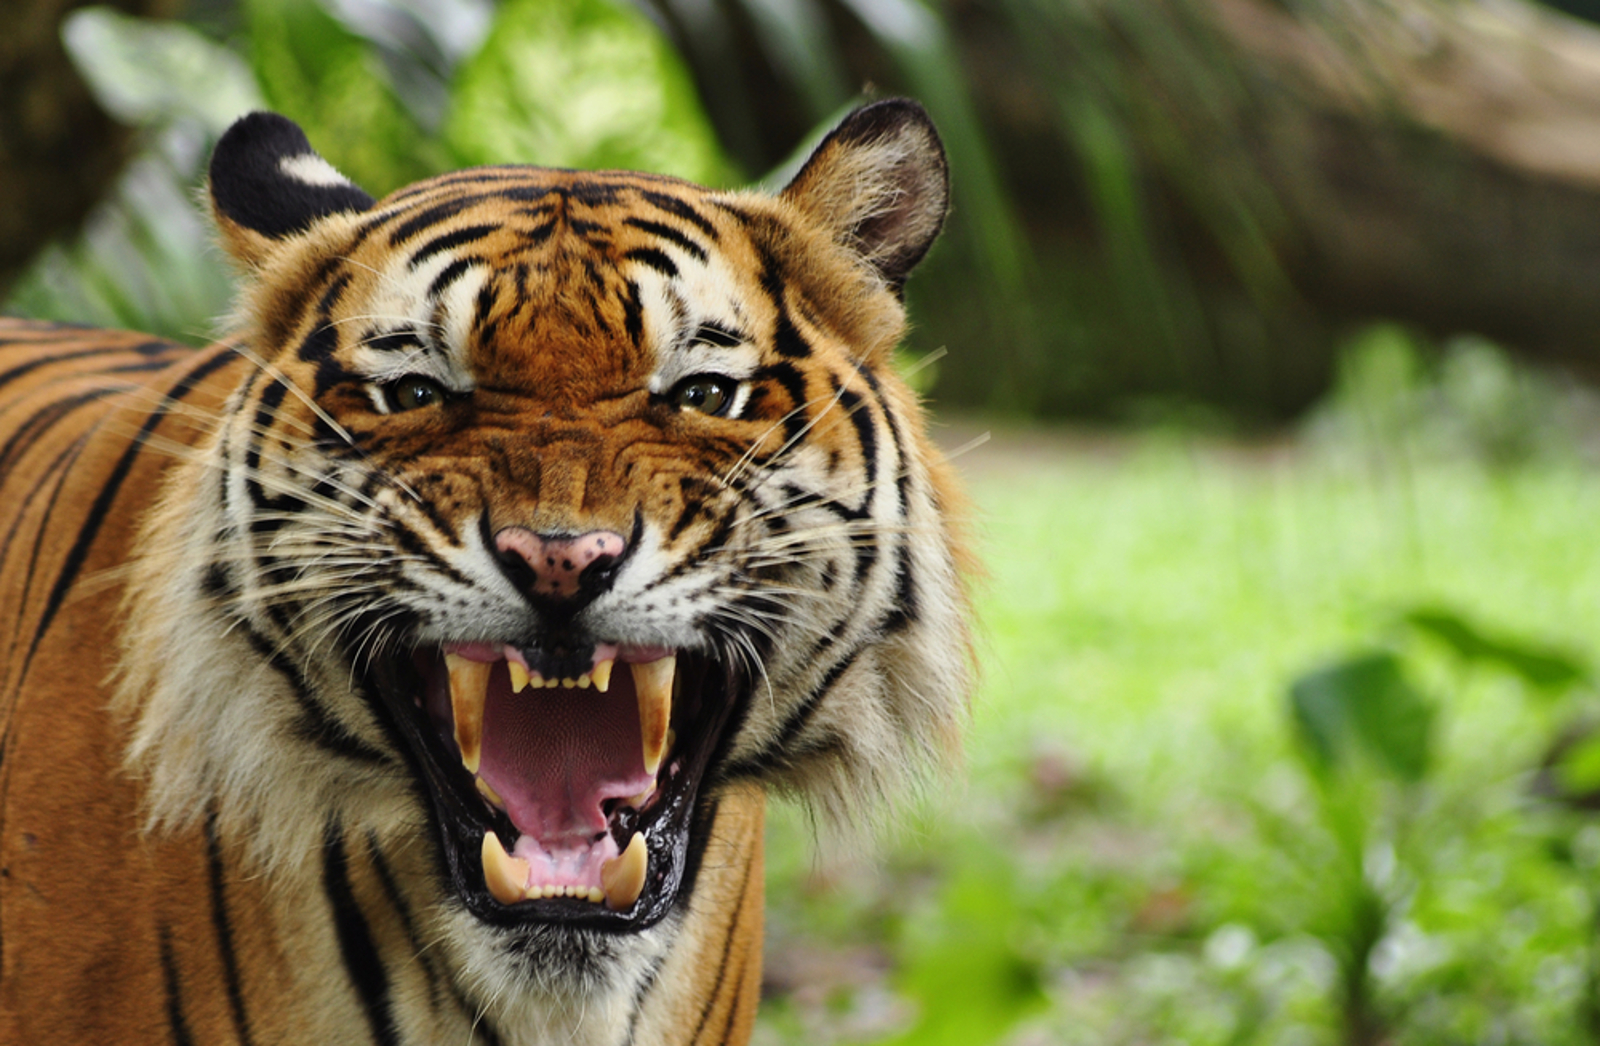 There Are More Tigers in Backyards Than the Wild – This Legislation Wants to Change That